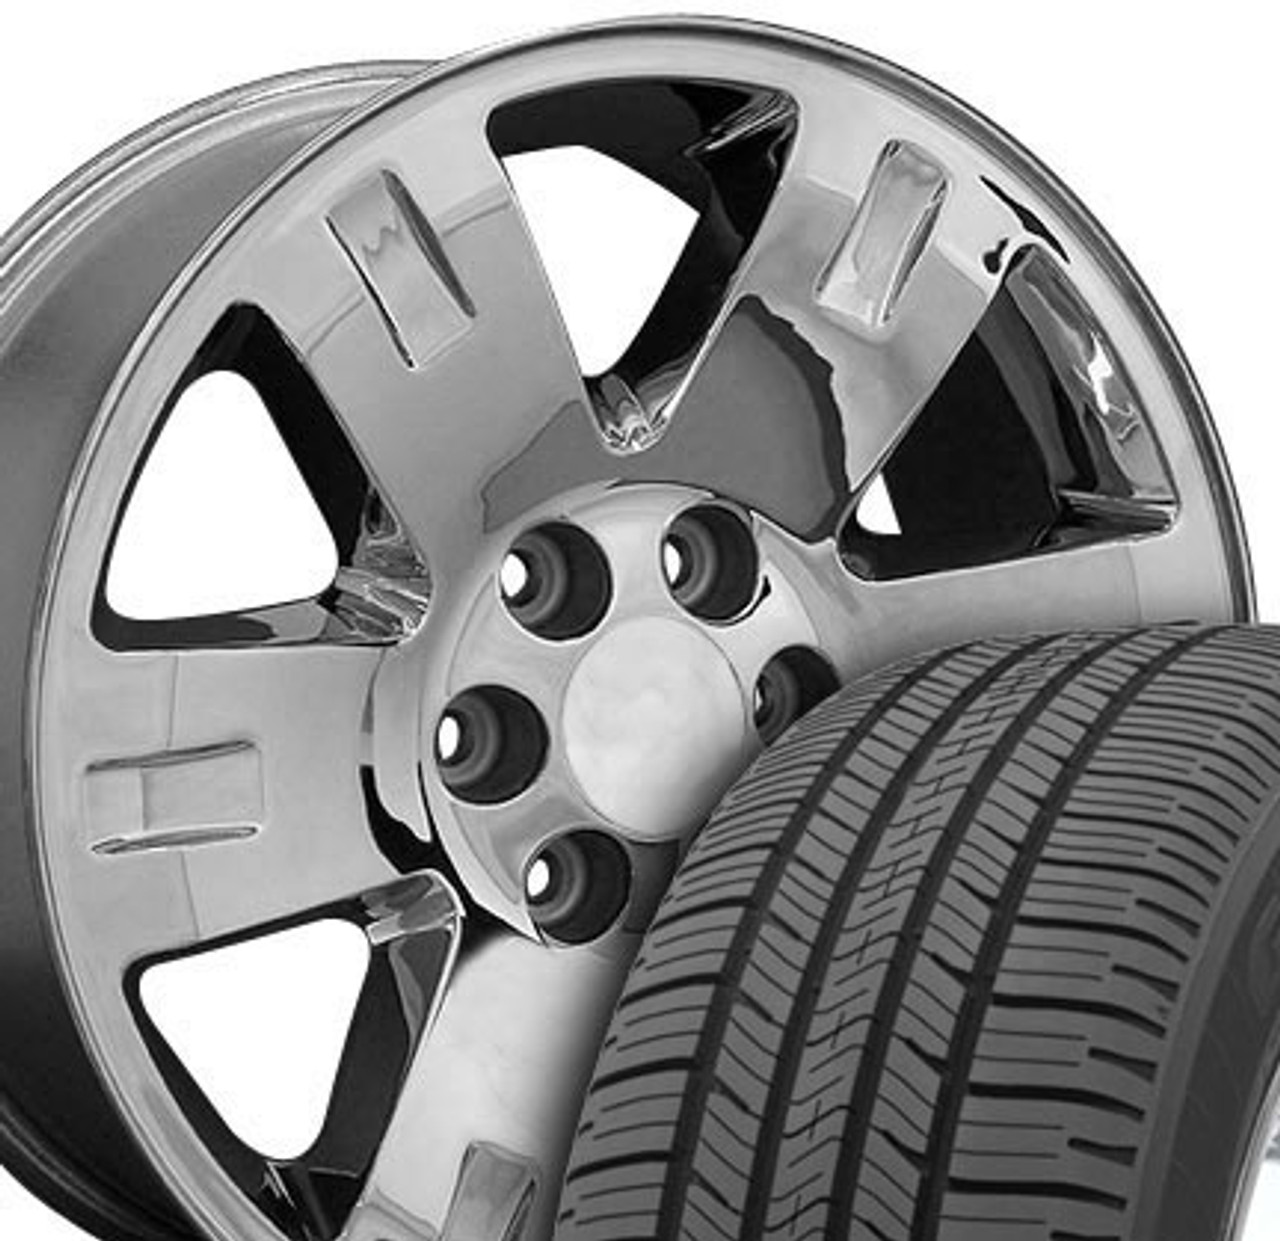 20 Fits Gmc Yukon Chevrolet Wheels And Tires Chrome Set Of 4 20x8 5 Rims And Tires Stock Wheel Solutions